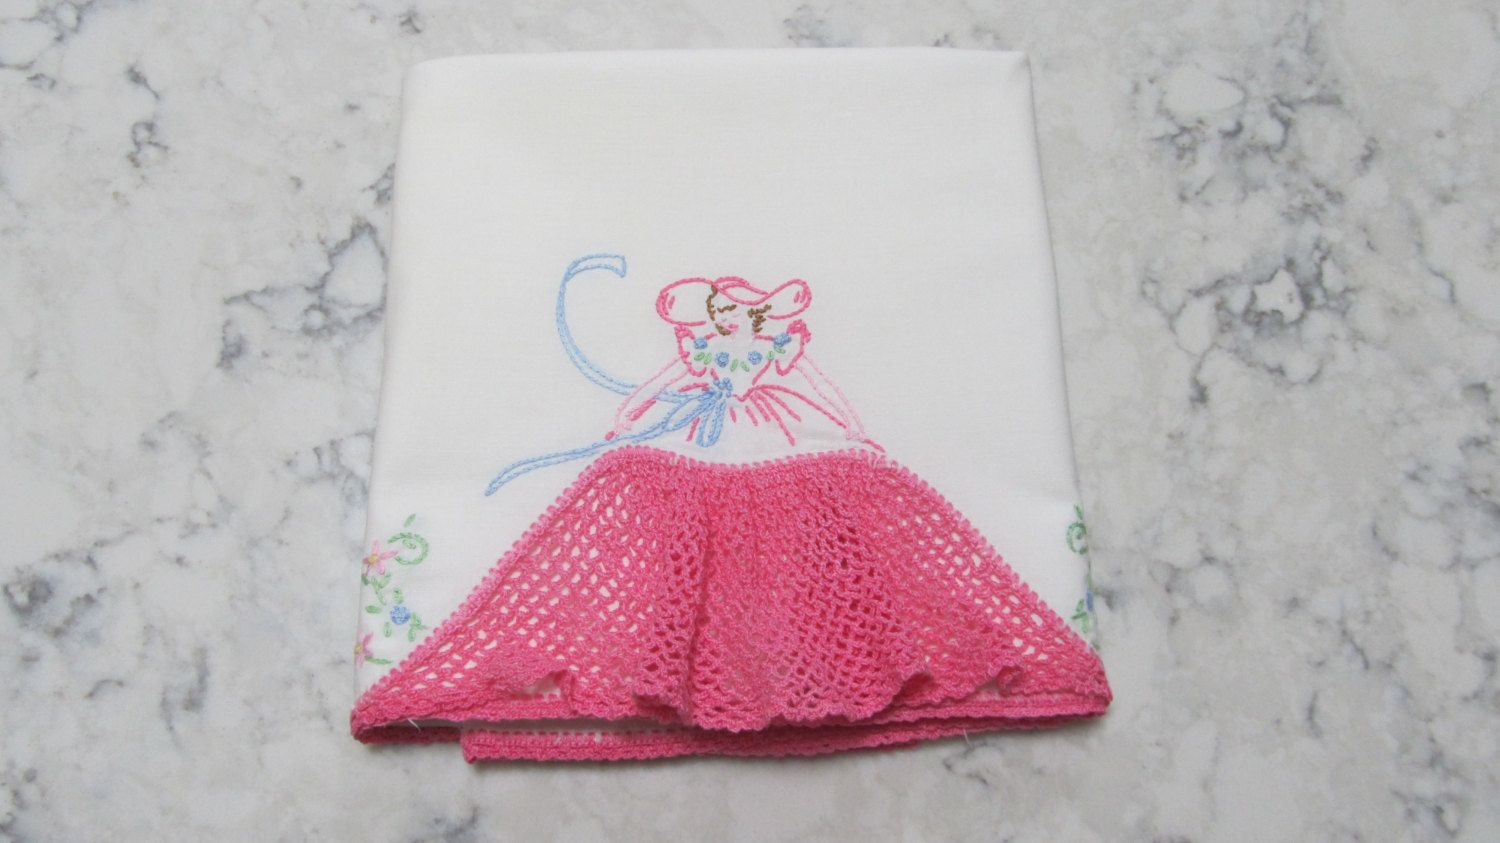 VINTAGE 1950's Era SINGLE Southern Belle Lady Pillowcase with Hand Crocheted Skirt by PrimaMona on Etsy